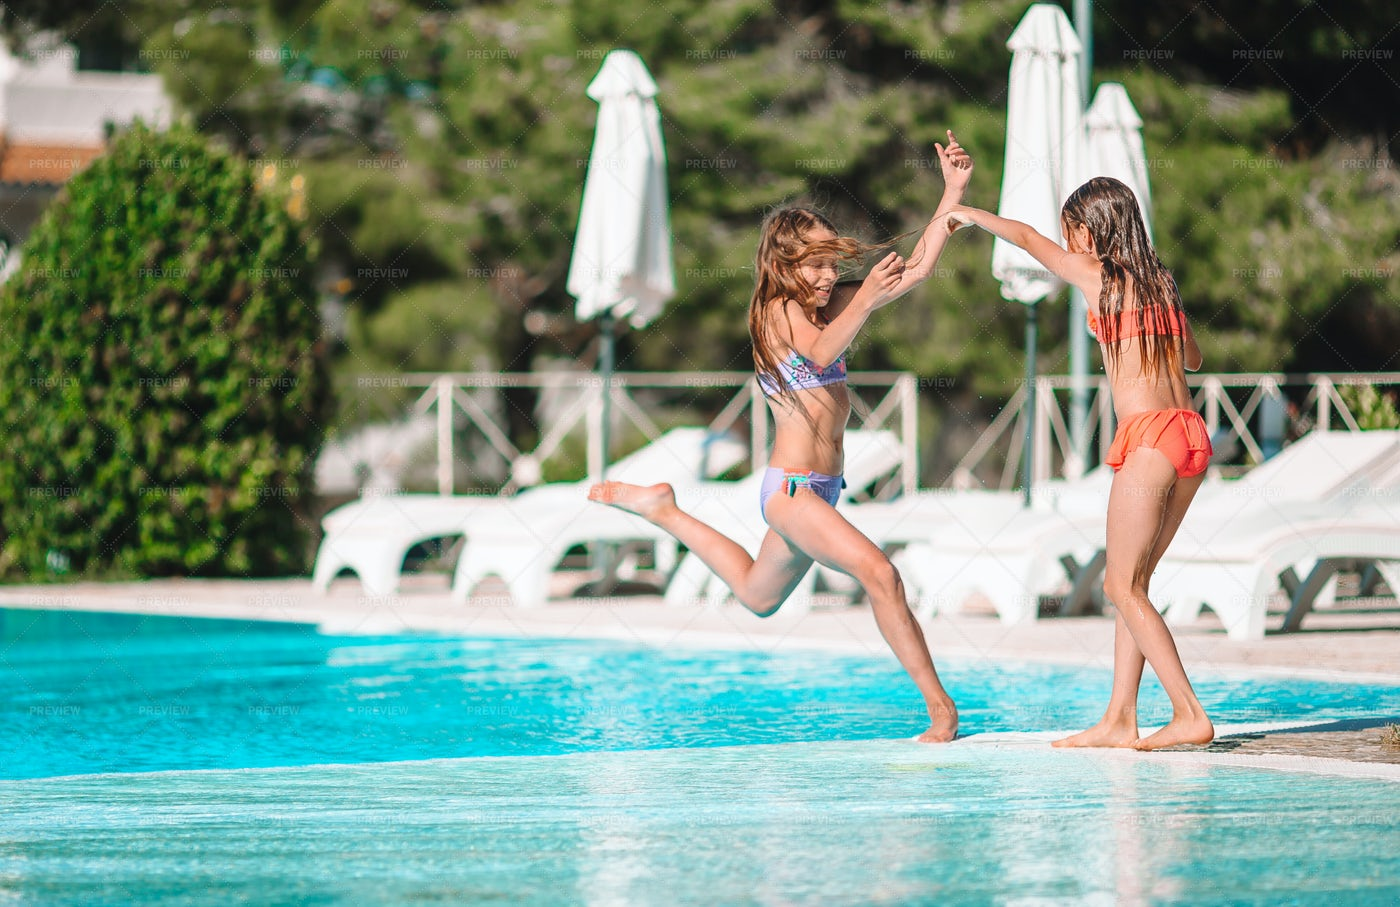 Sisters Play In The Pool: Stock Photos